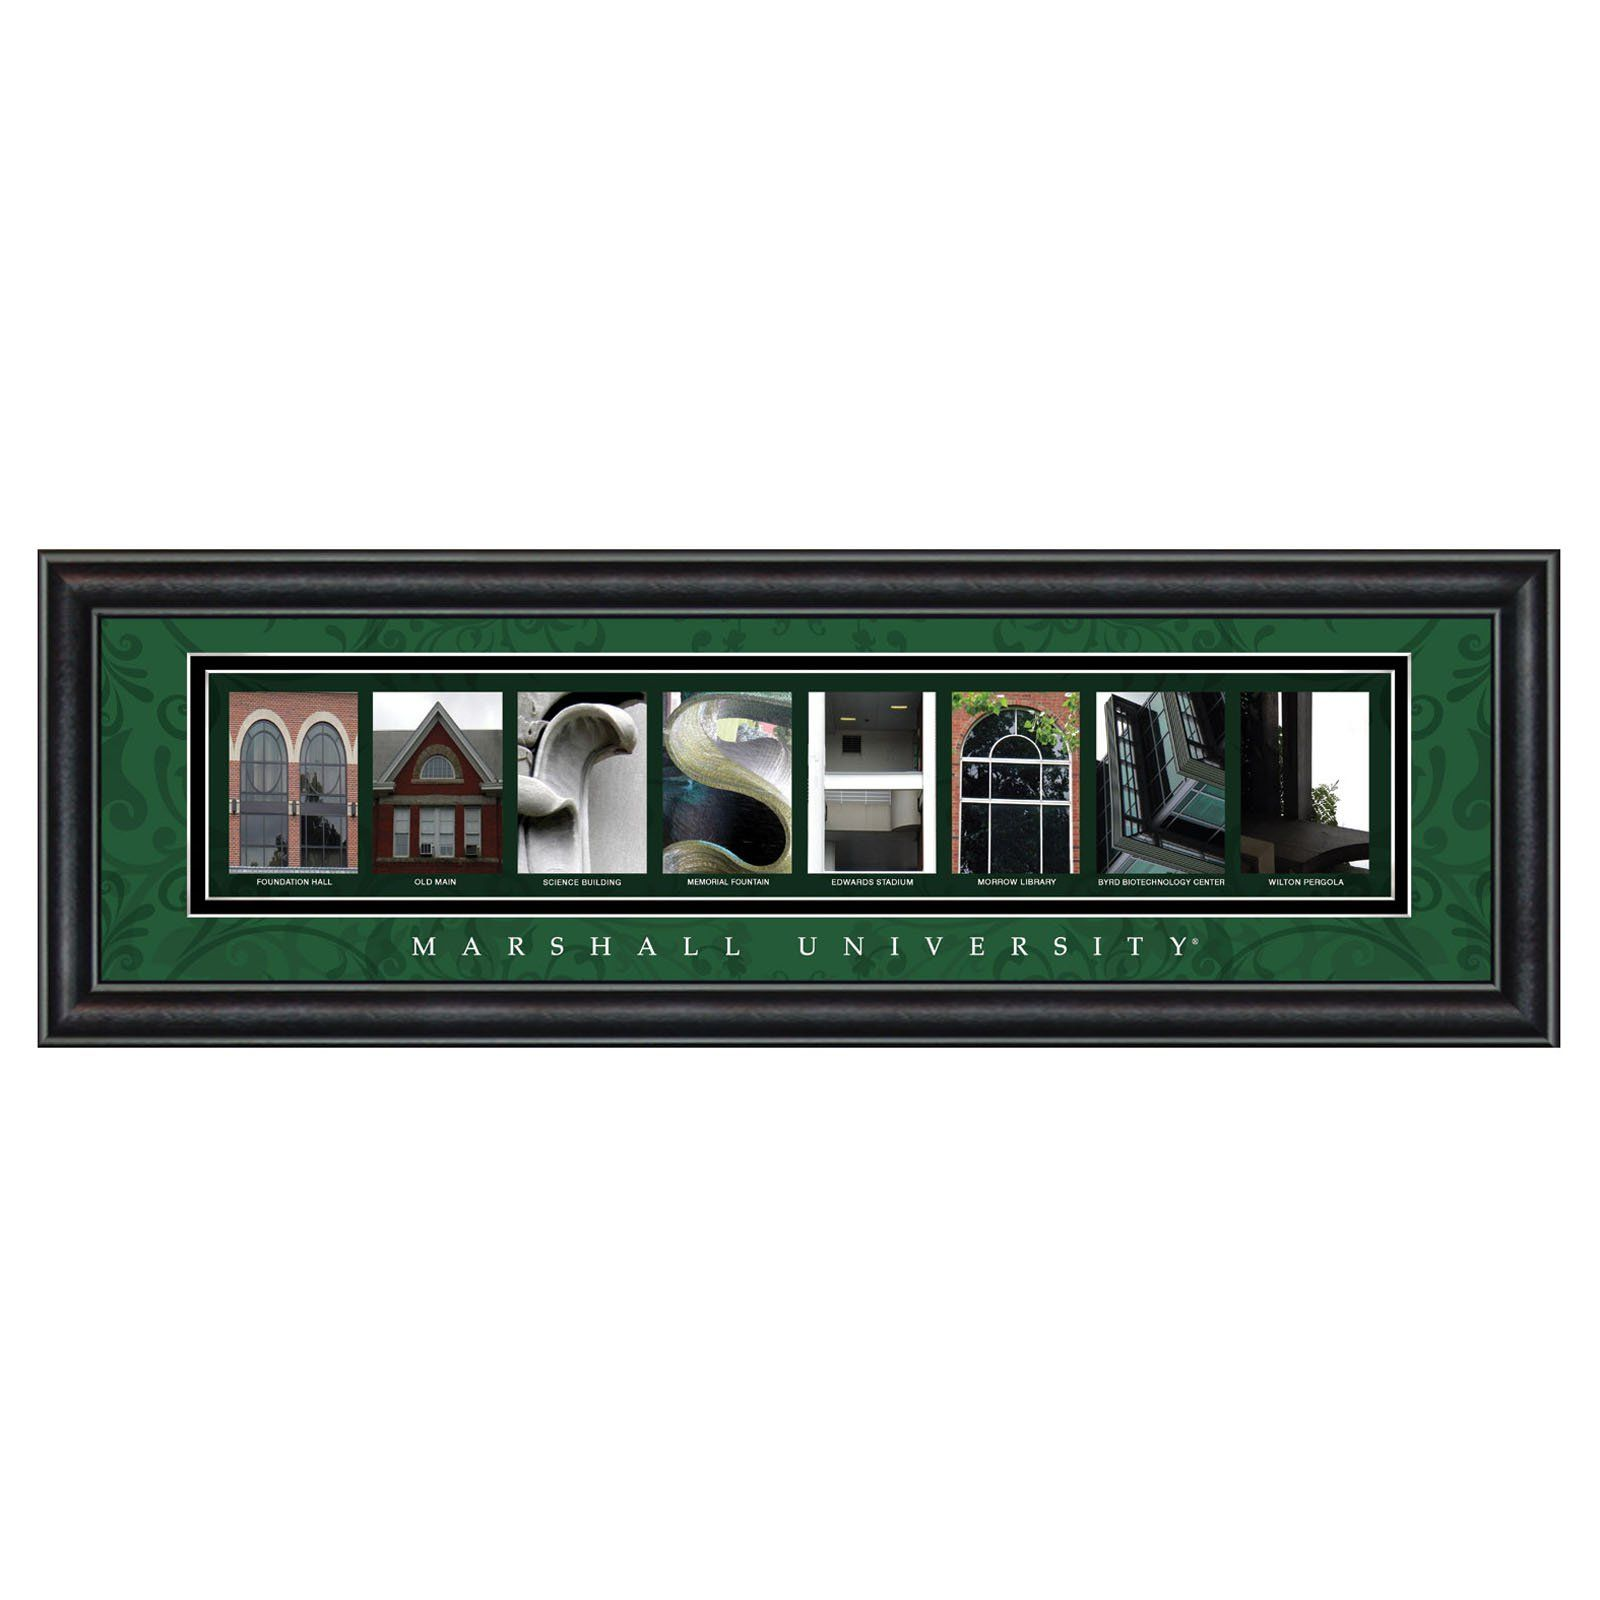 Framed Letter Wall Art - Marshall University - 24W x 8H in. - CLAL1B22MRSH  sc 1 st  Pinterest & Framed Letter Wall Art - Marshall University - 24W x 8H in ...